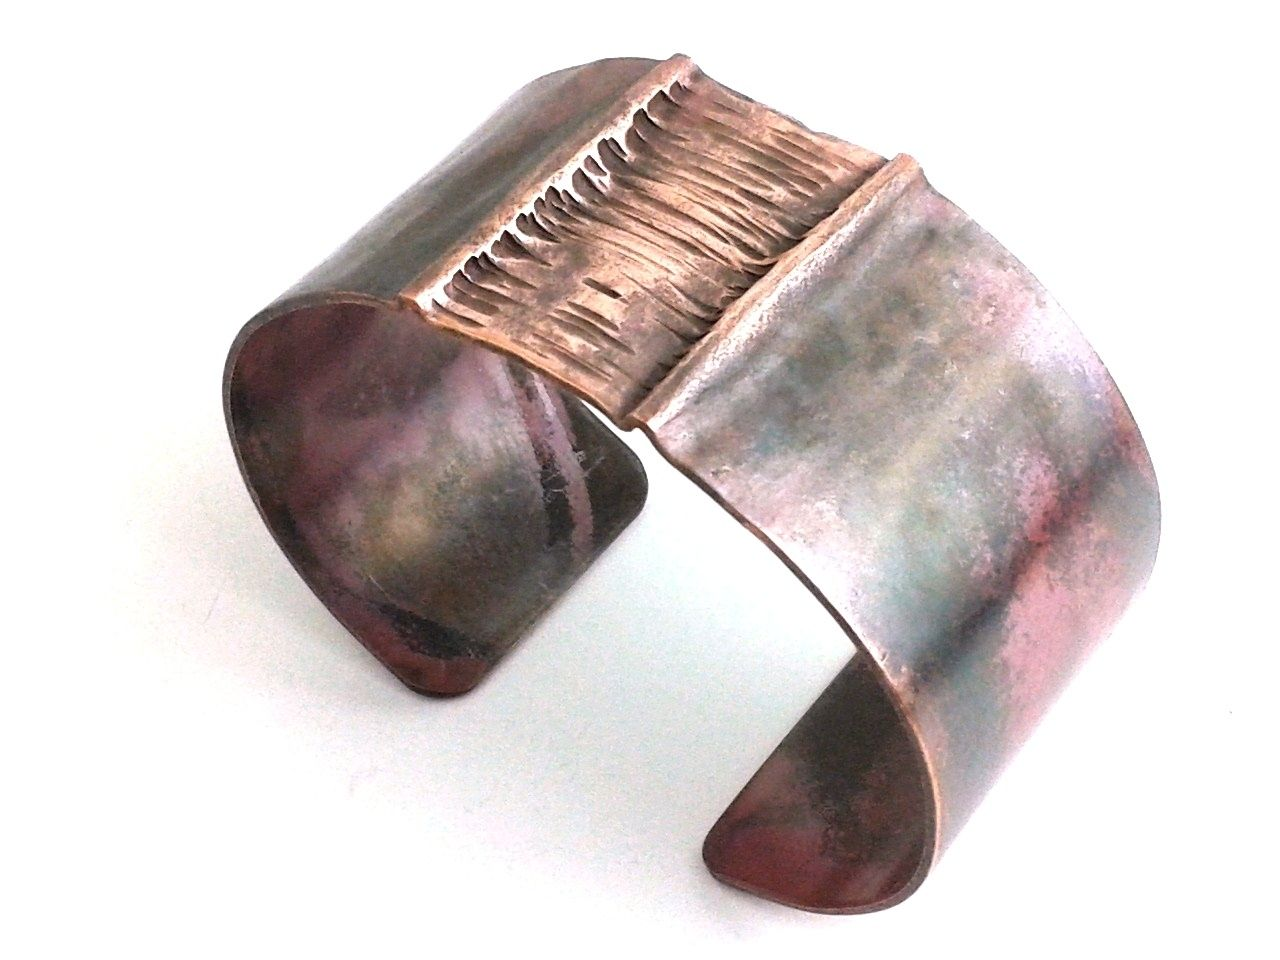 Damm she copper cuff bracelet asian style very